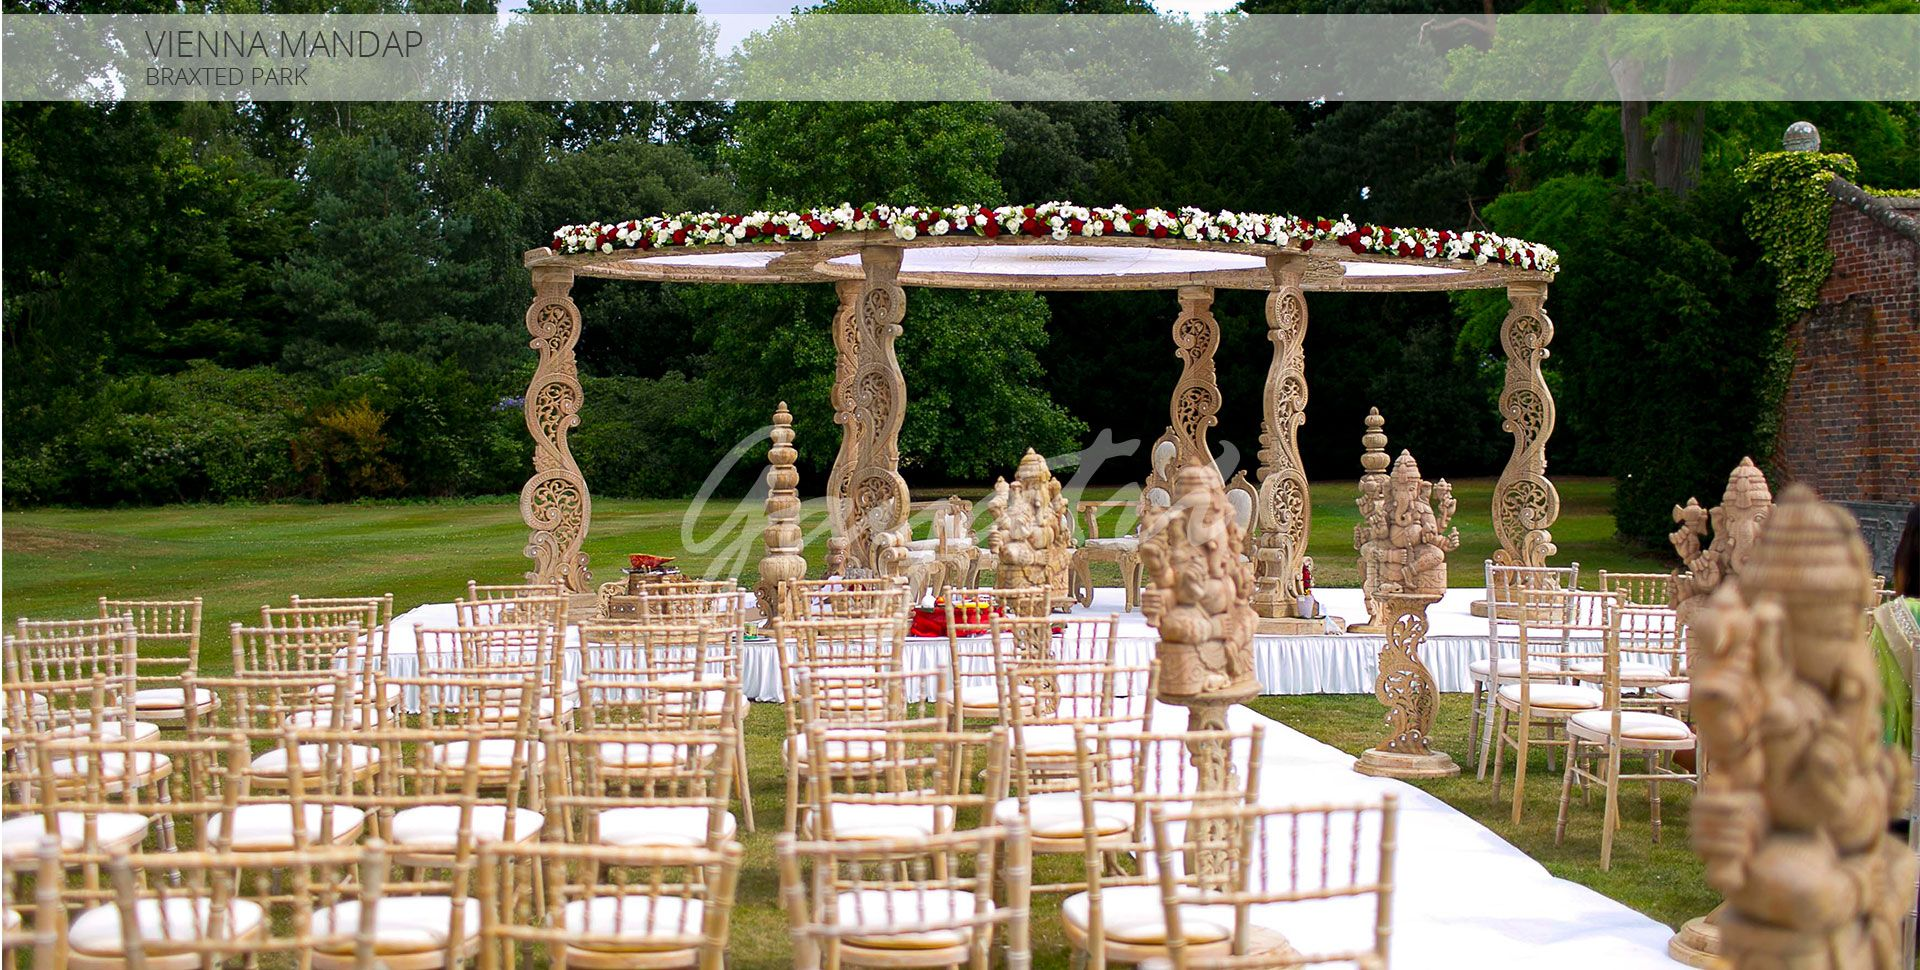 Wedding mandap decoration images  Gayatri Weddings and Events have a team of creative and competent